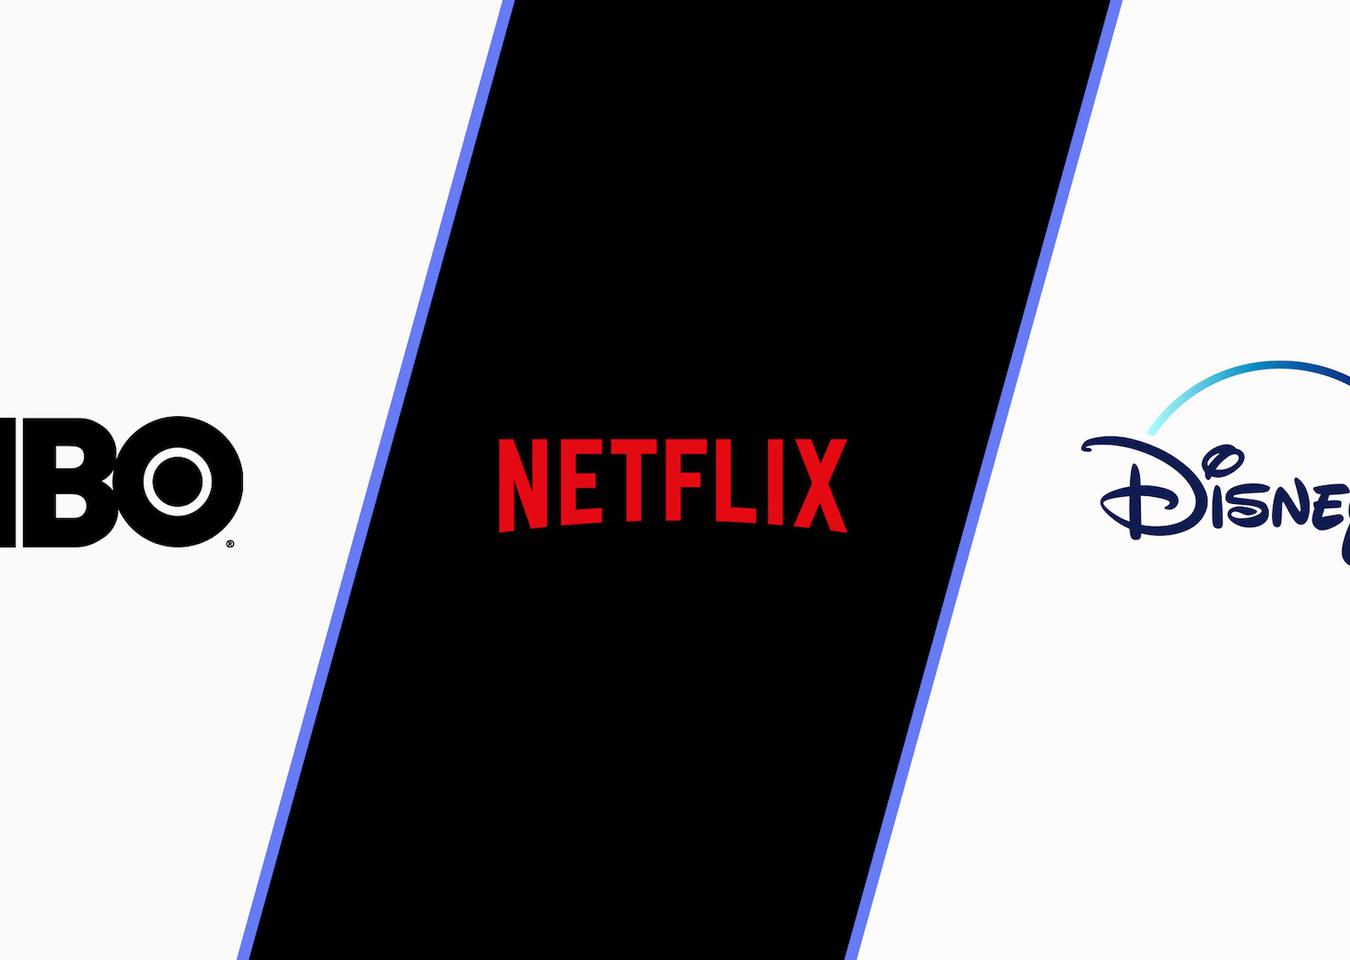 These Netflix Hbo And Disney Series Will Need Talent When Production Resumes